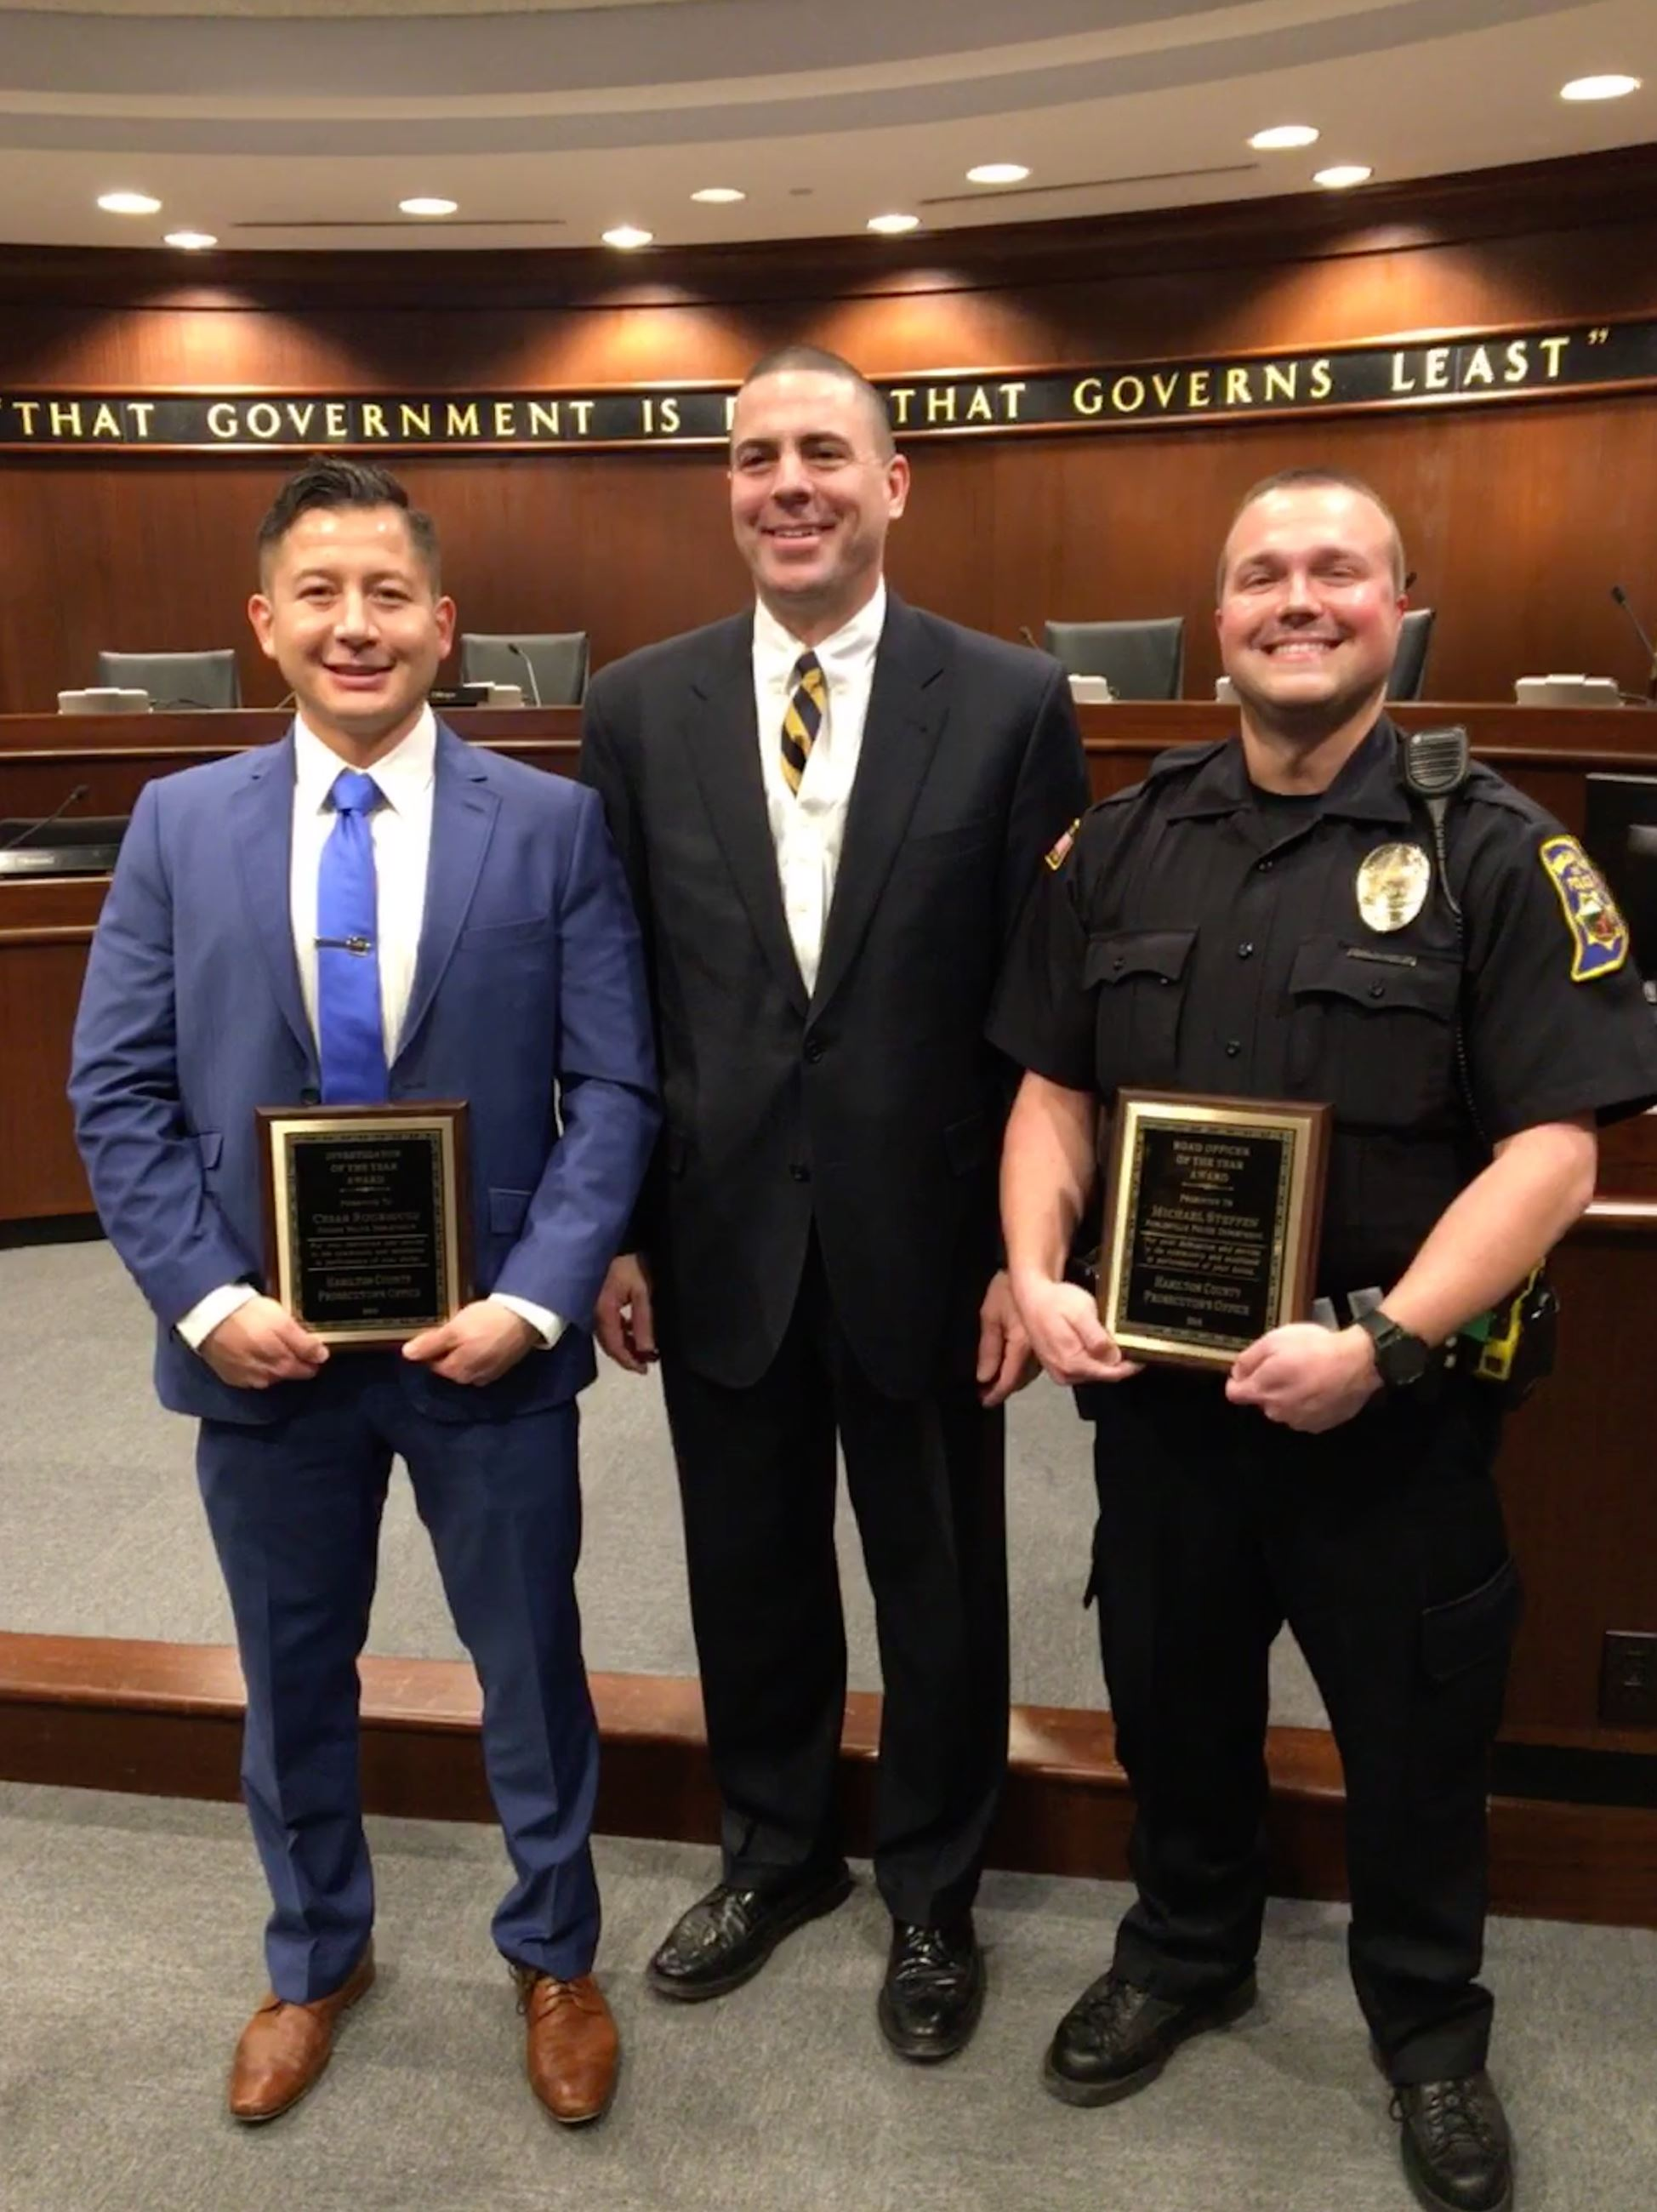 2018 Officers of the Year (L-R: Det. Rodriguez, PA Buckingham, Ofcr. Steffen)